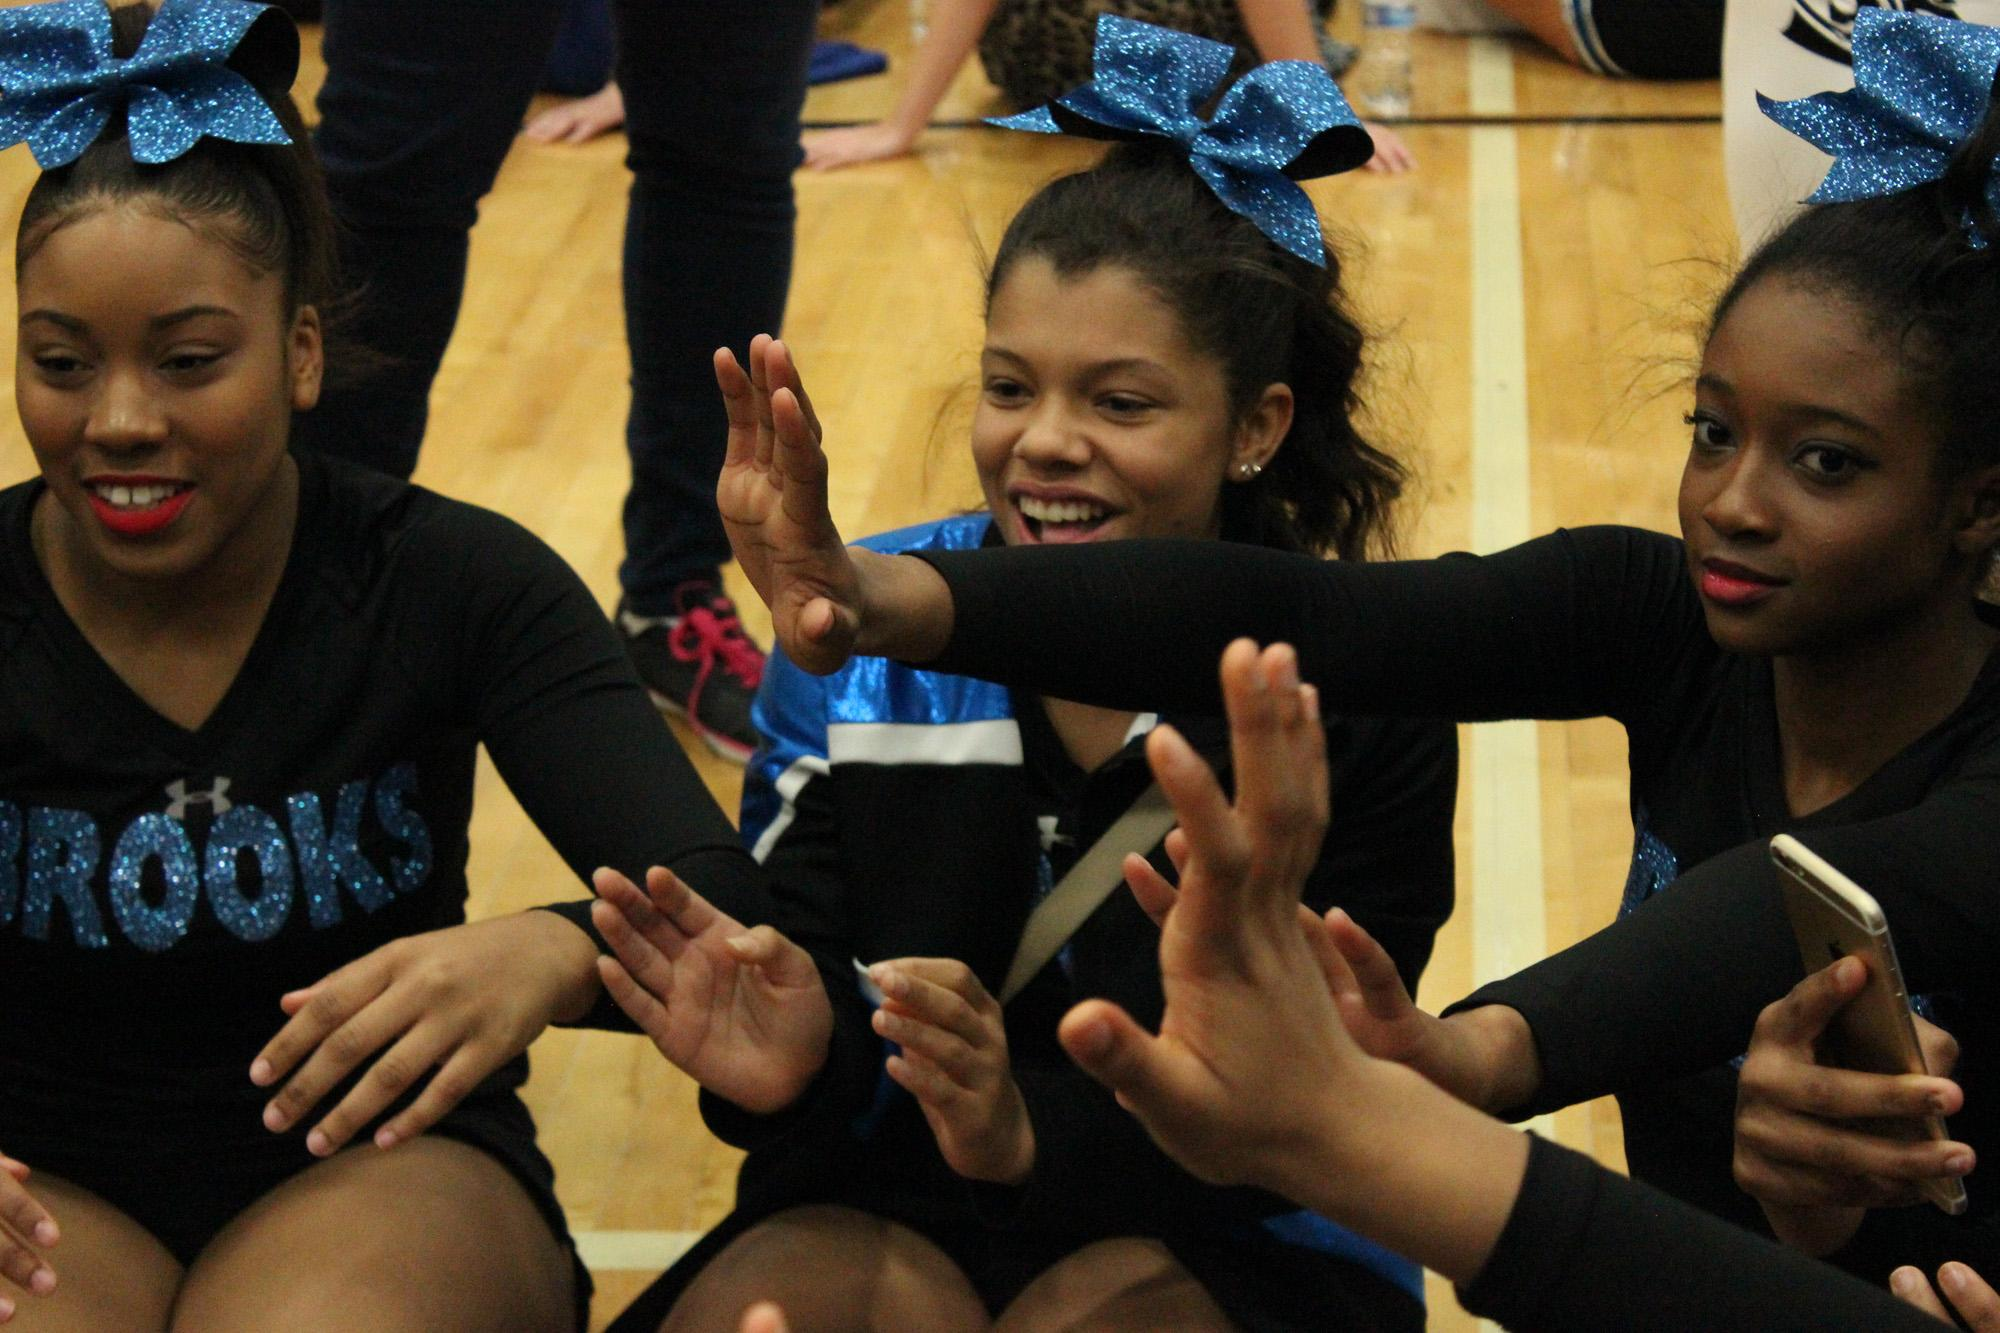 Mia Roberts (center) at the ICCA Cheerleading Invitationals